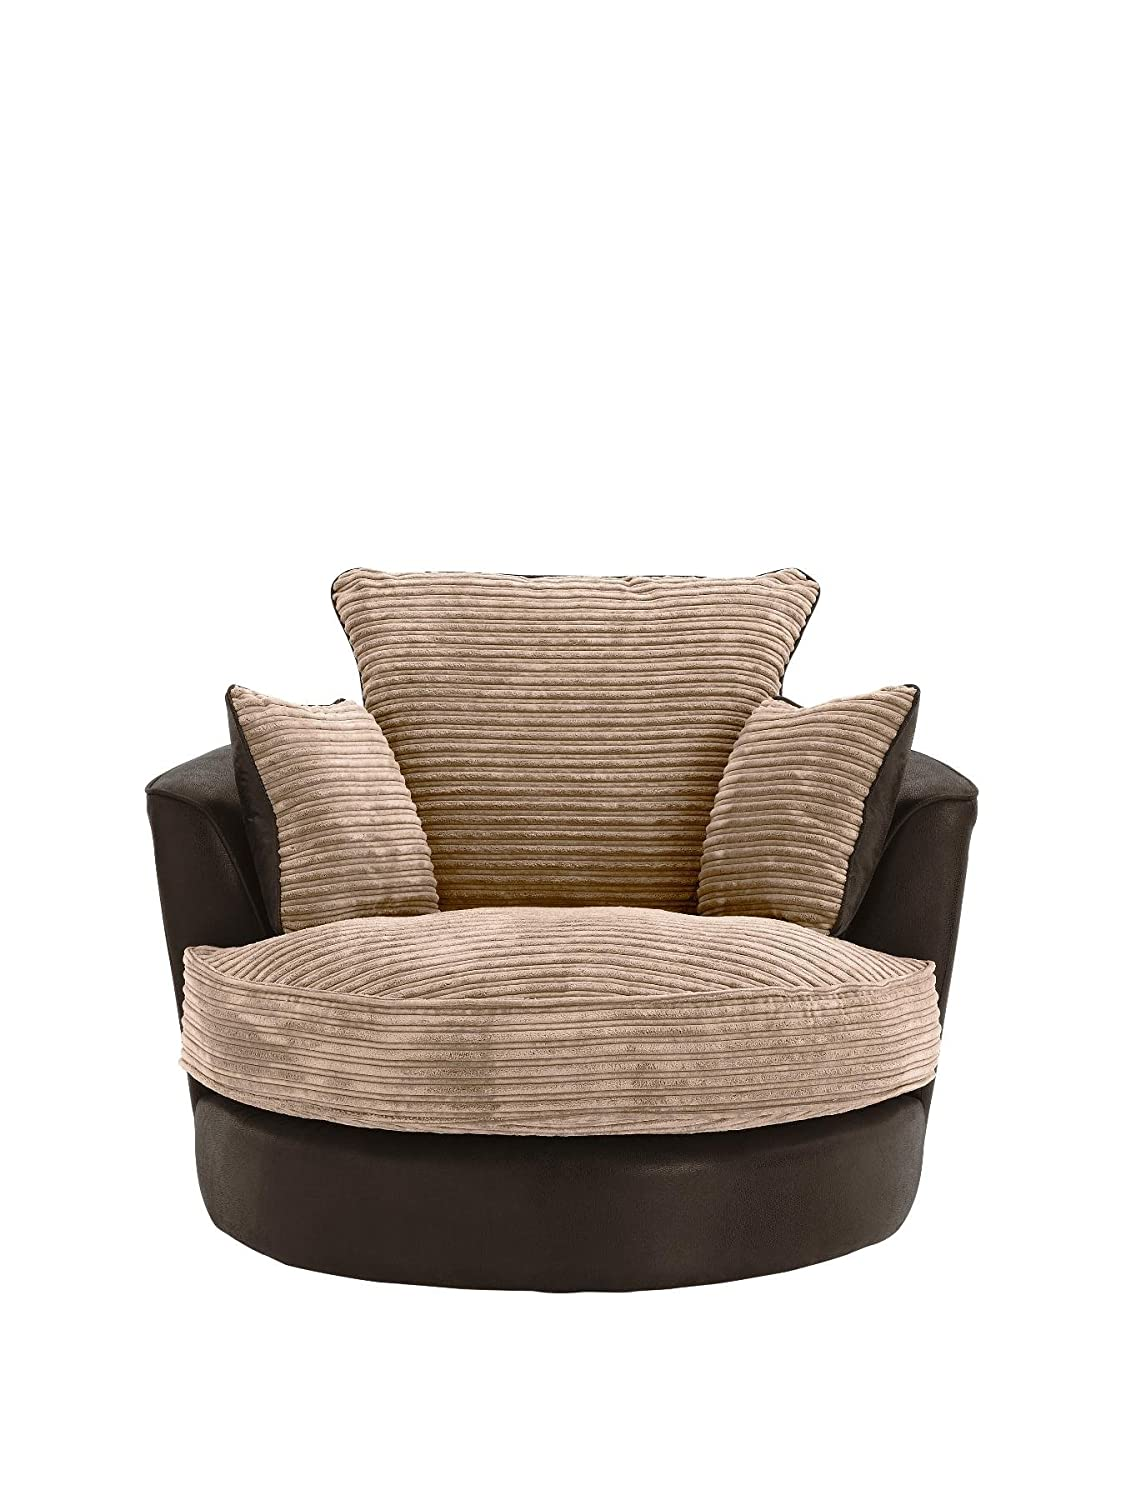 Large Swivel Round Cuddle Chair Fabric Corduroy Chenille Leather Designer  Scatter Cushions (Brown): Amazon.co.uk: Kitchen U0026 Home